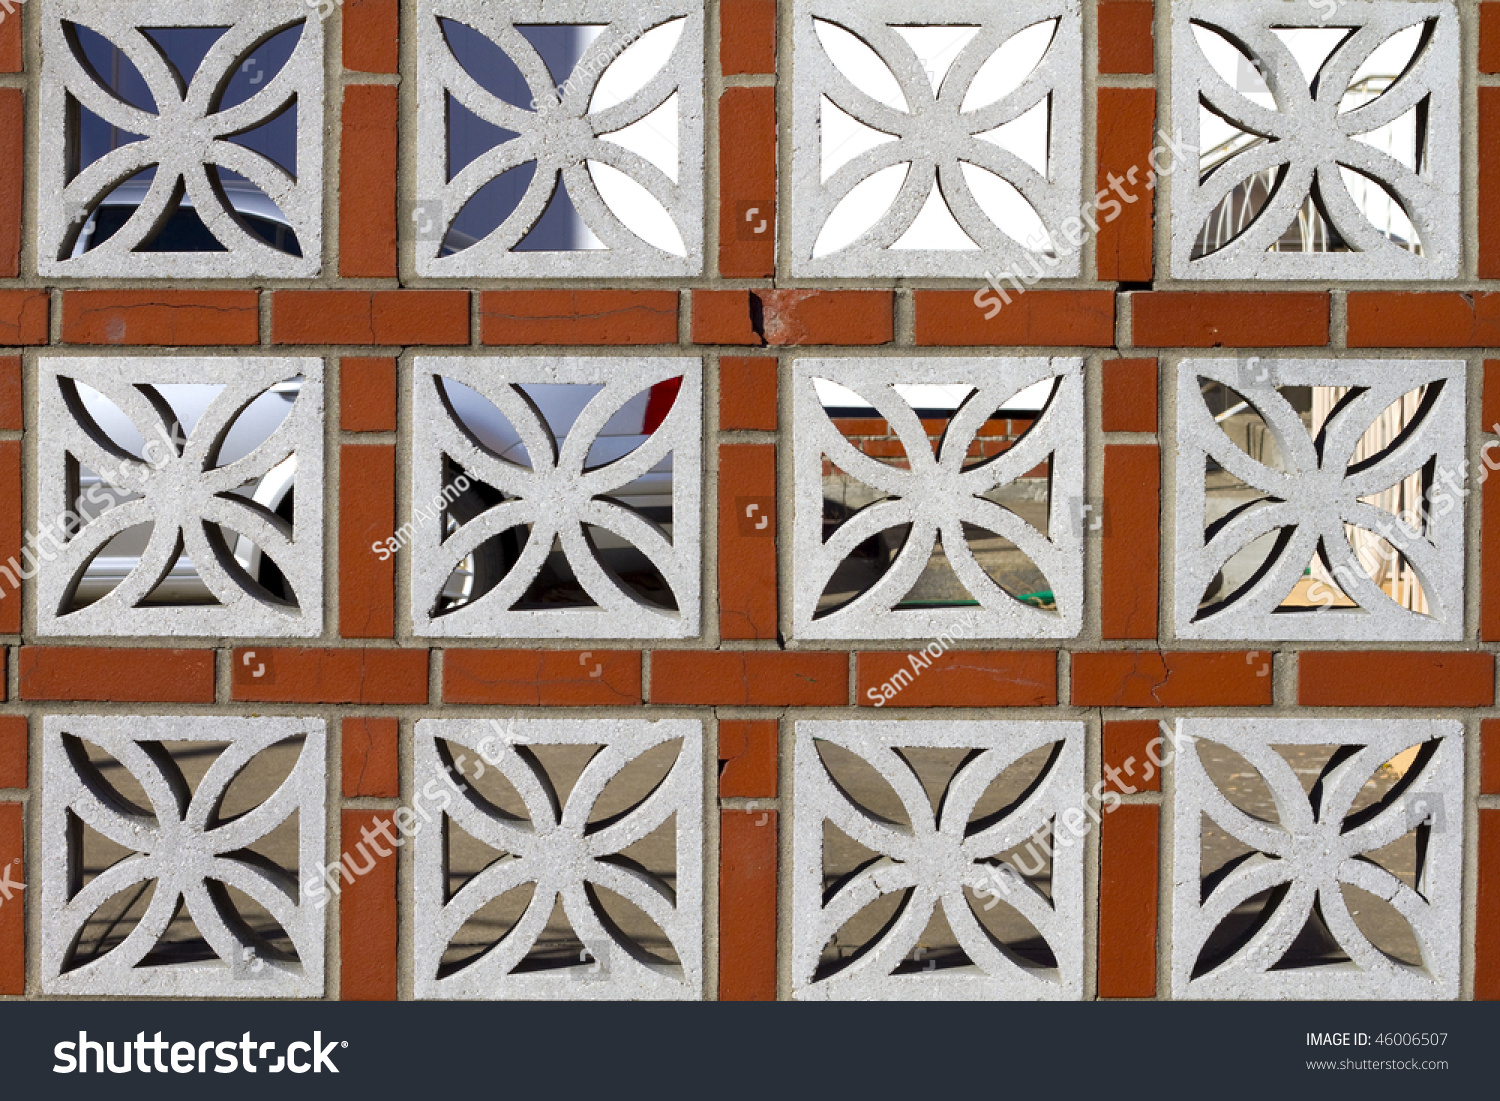 brick and decorative concrete block design fence as a background - Decorative Concrete Block